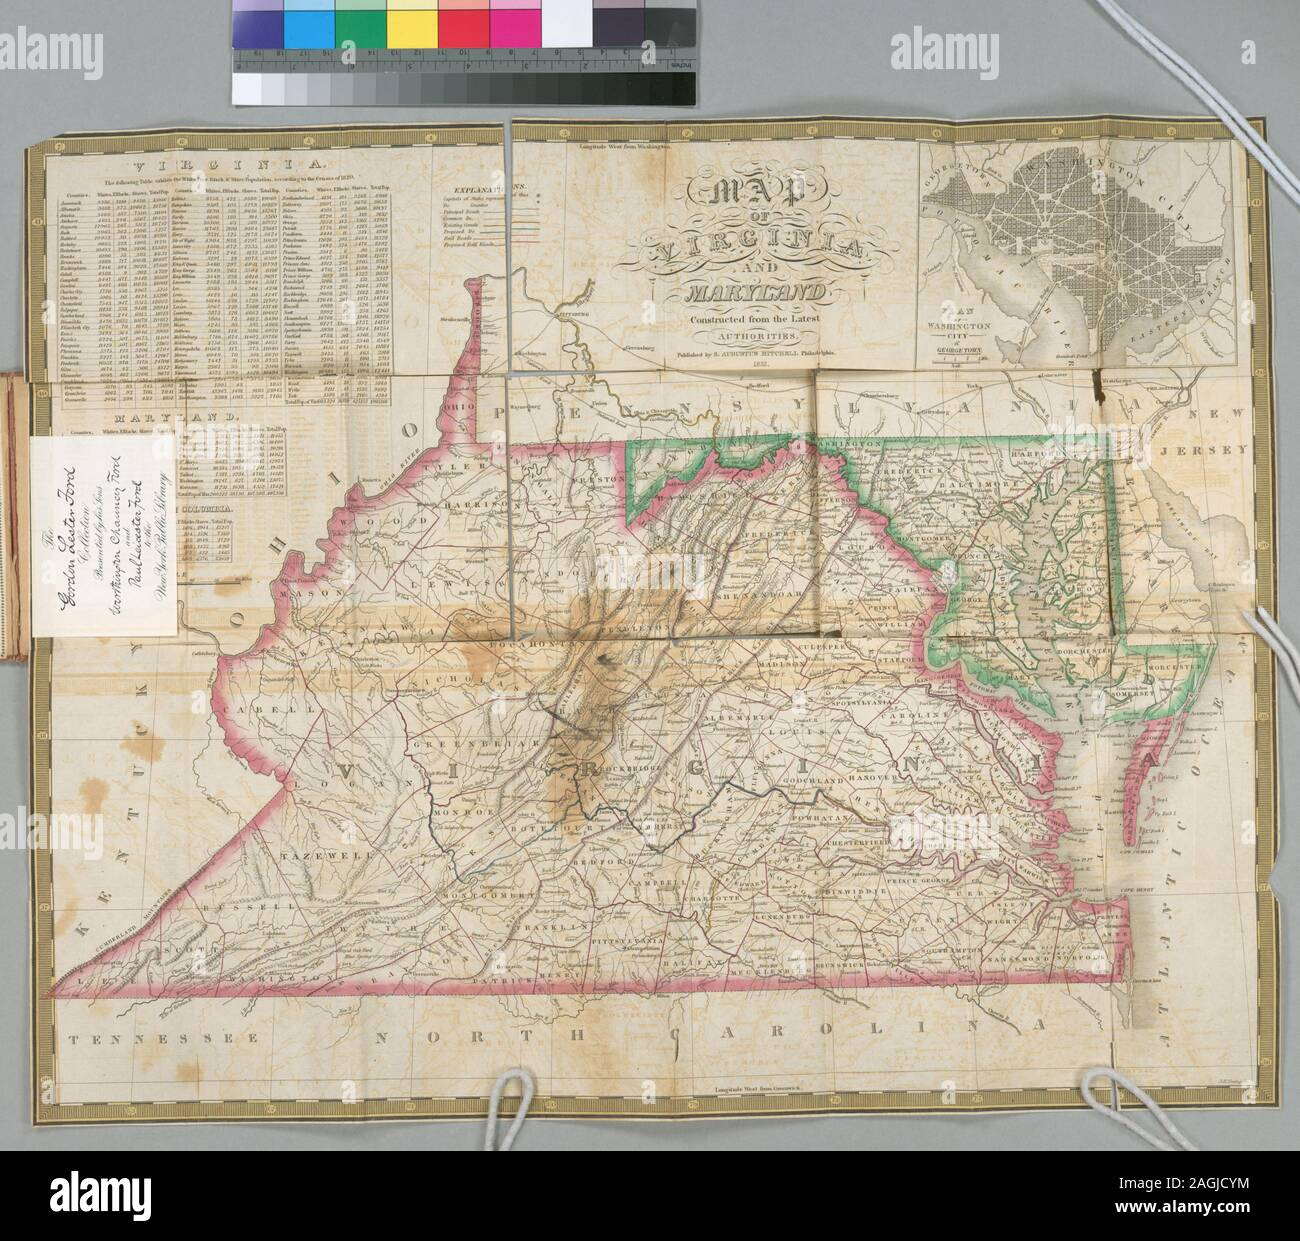 Relief shown by hachures. Includes statistical tables of ... on map of virginia in 1825, map of virginia historical sites, map of virginia ohio, map of virginia in 1850, map of virginia in 1860, map of virginia in 1822, map of virginia va,